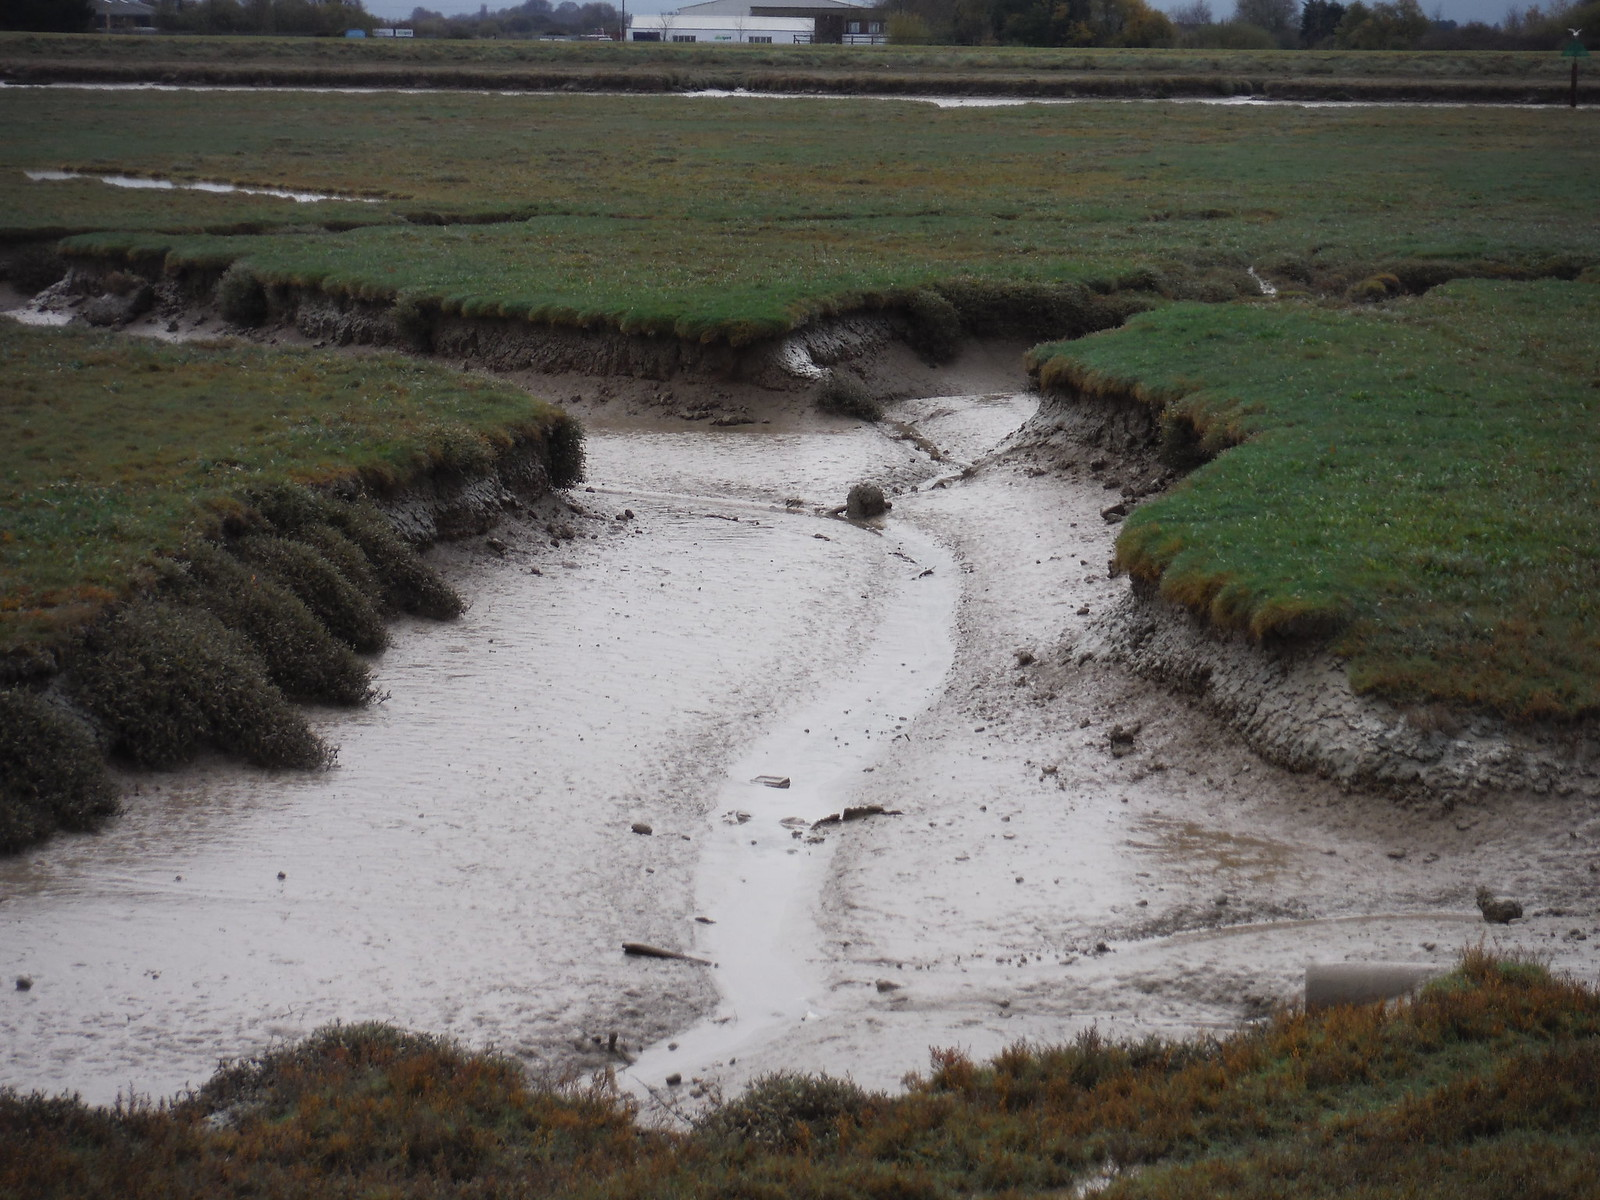 Muddy Channel, off River Rother SWC 154 - Rye to Dungeness and Lydd-on-Sea or Lydd or Circular